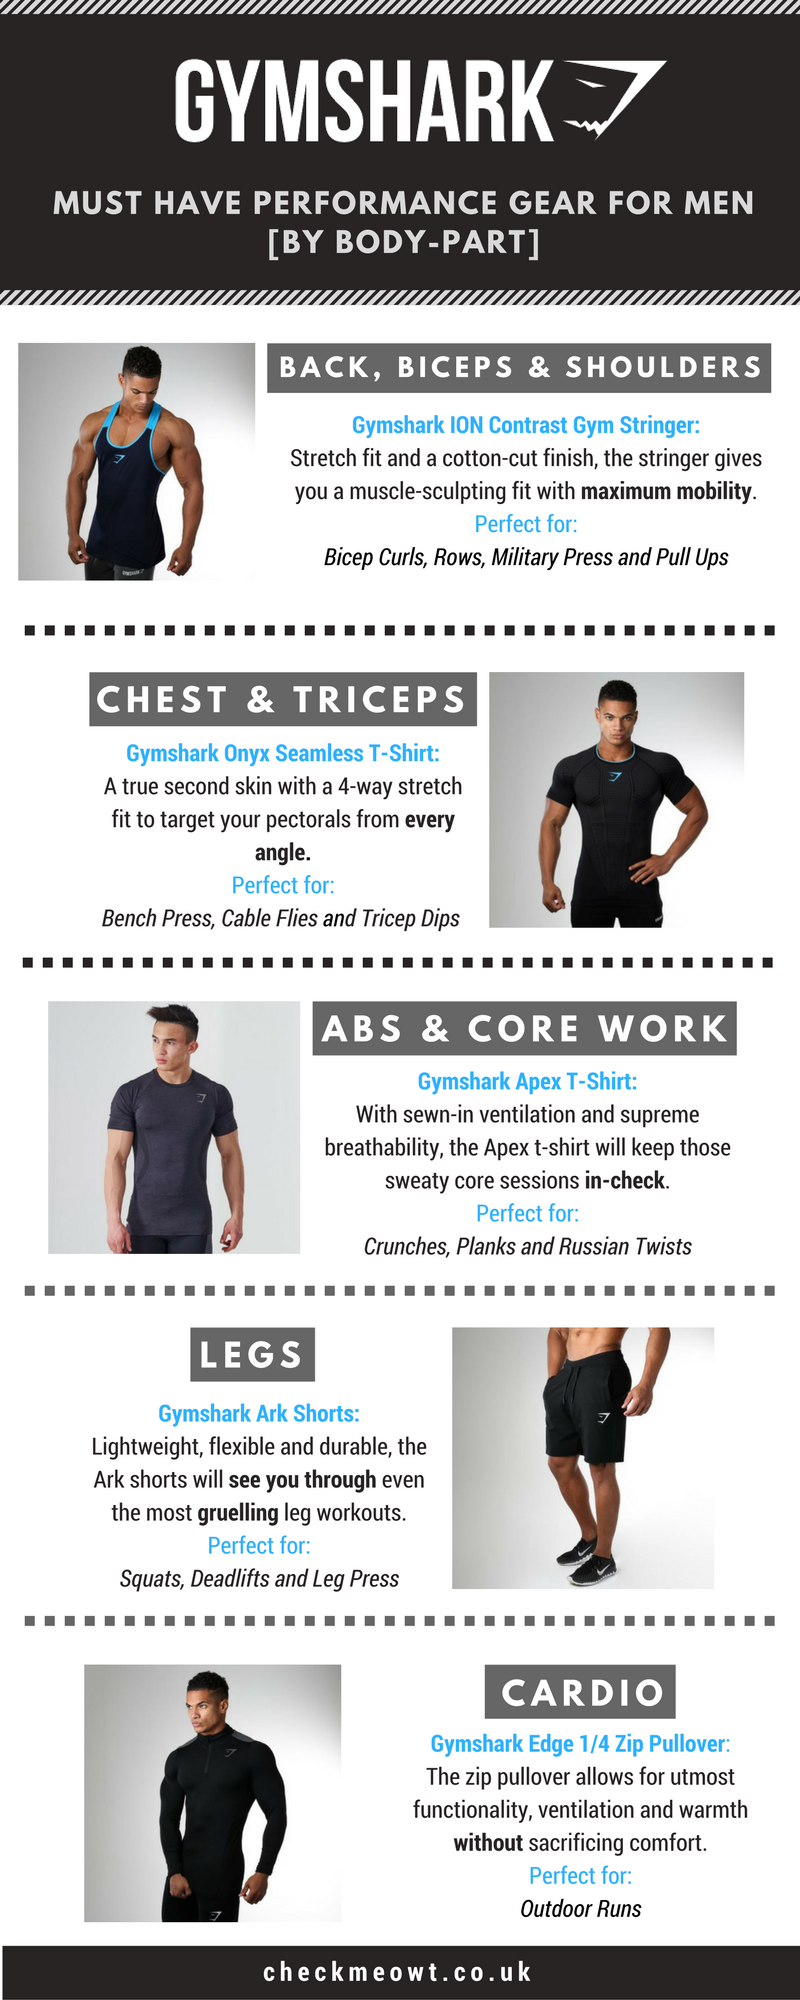 Gymshark-Infographic-Mens-Performance-Gear